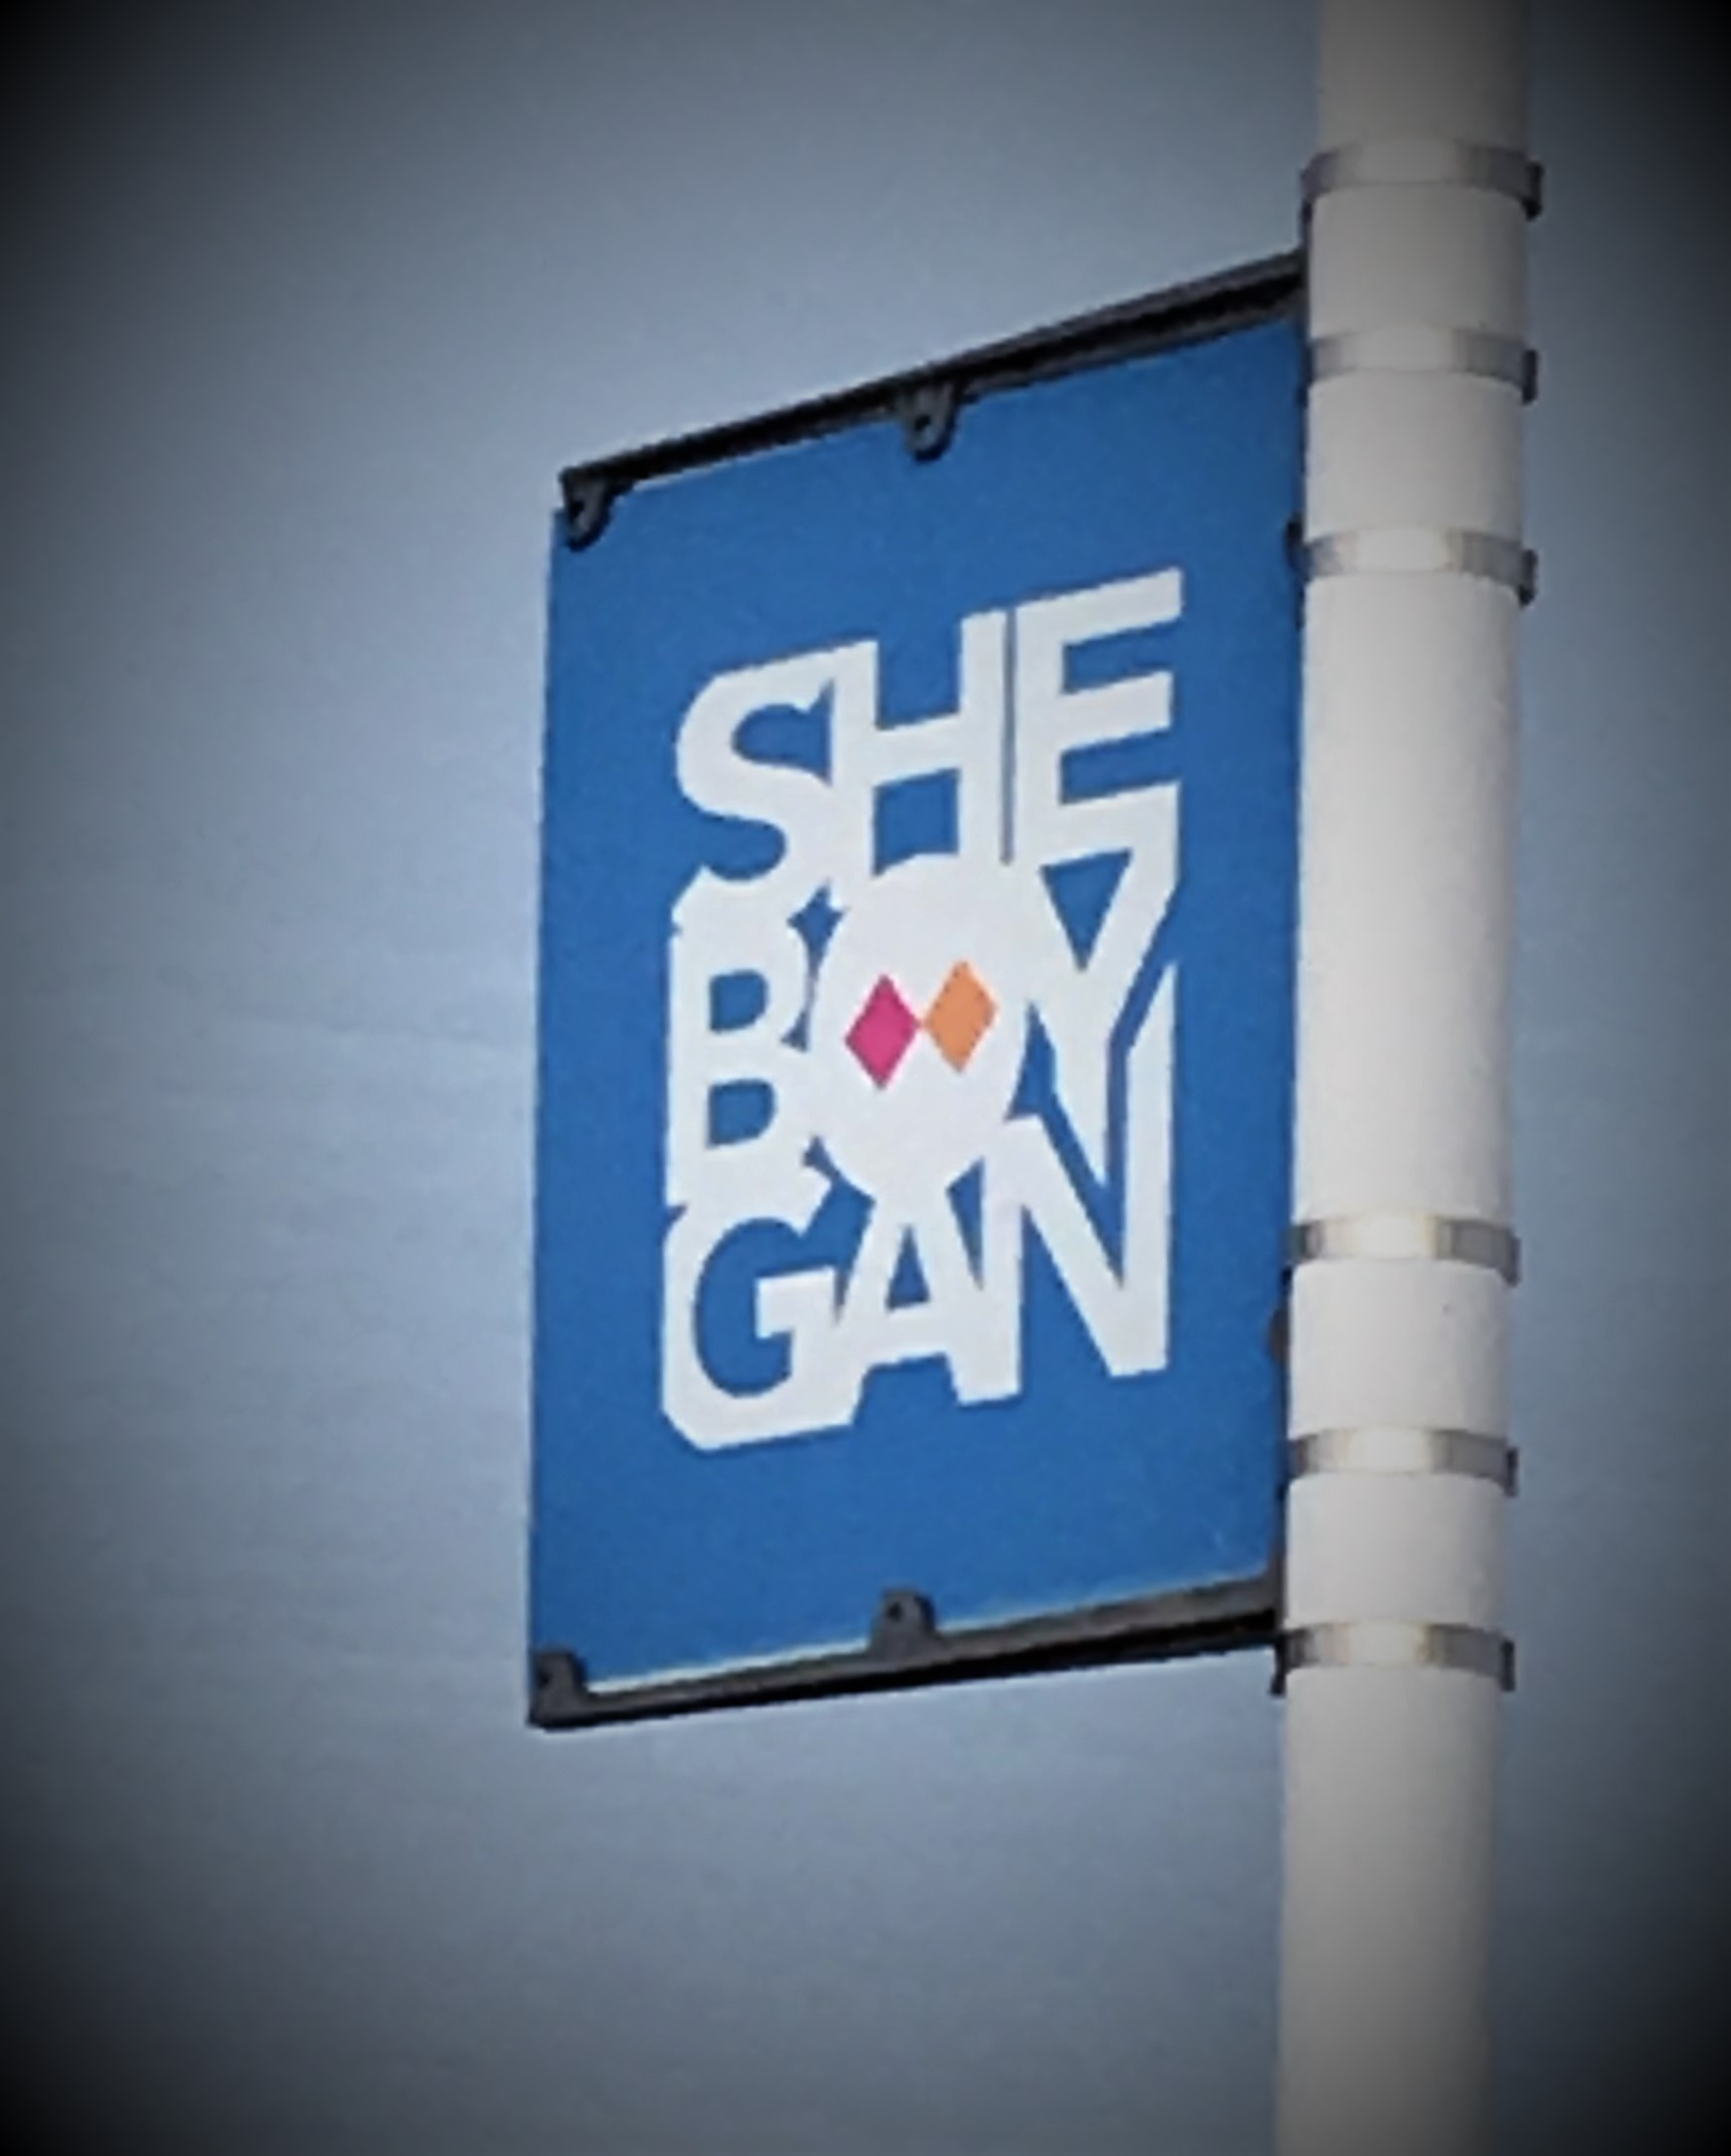 Sheboygan Named Second Most Livable City in U.S.